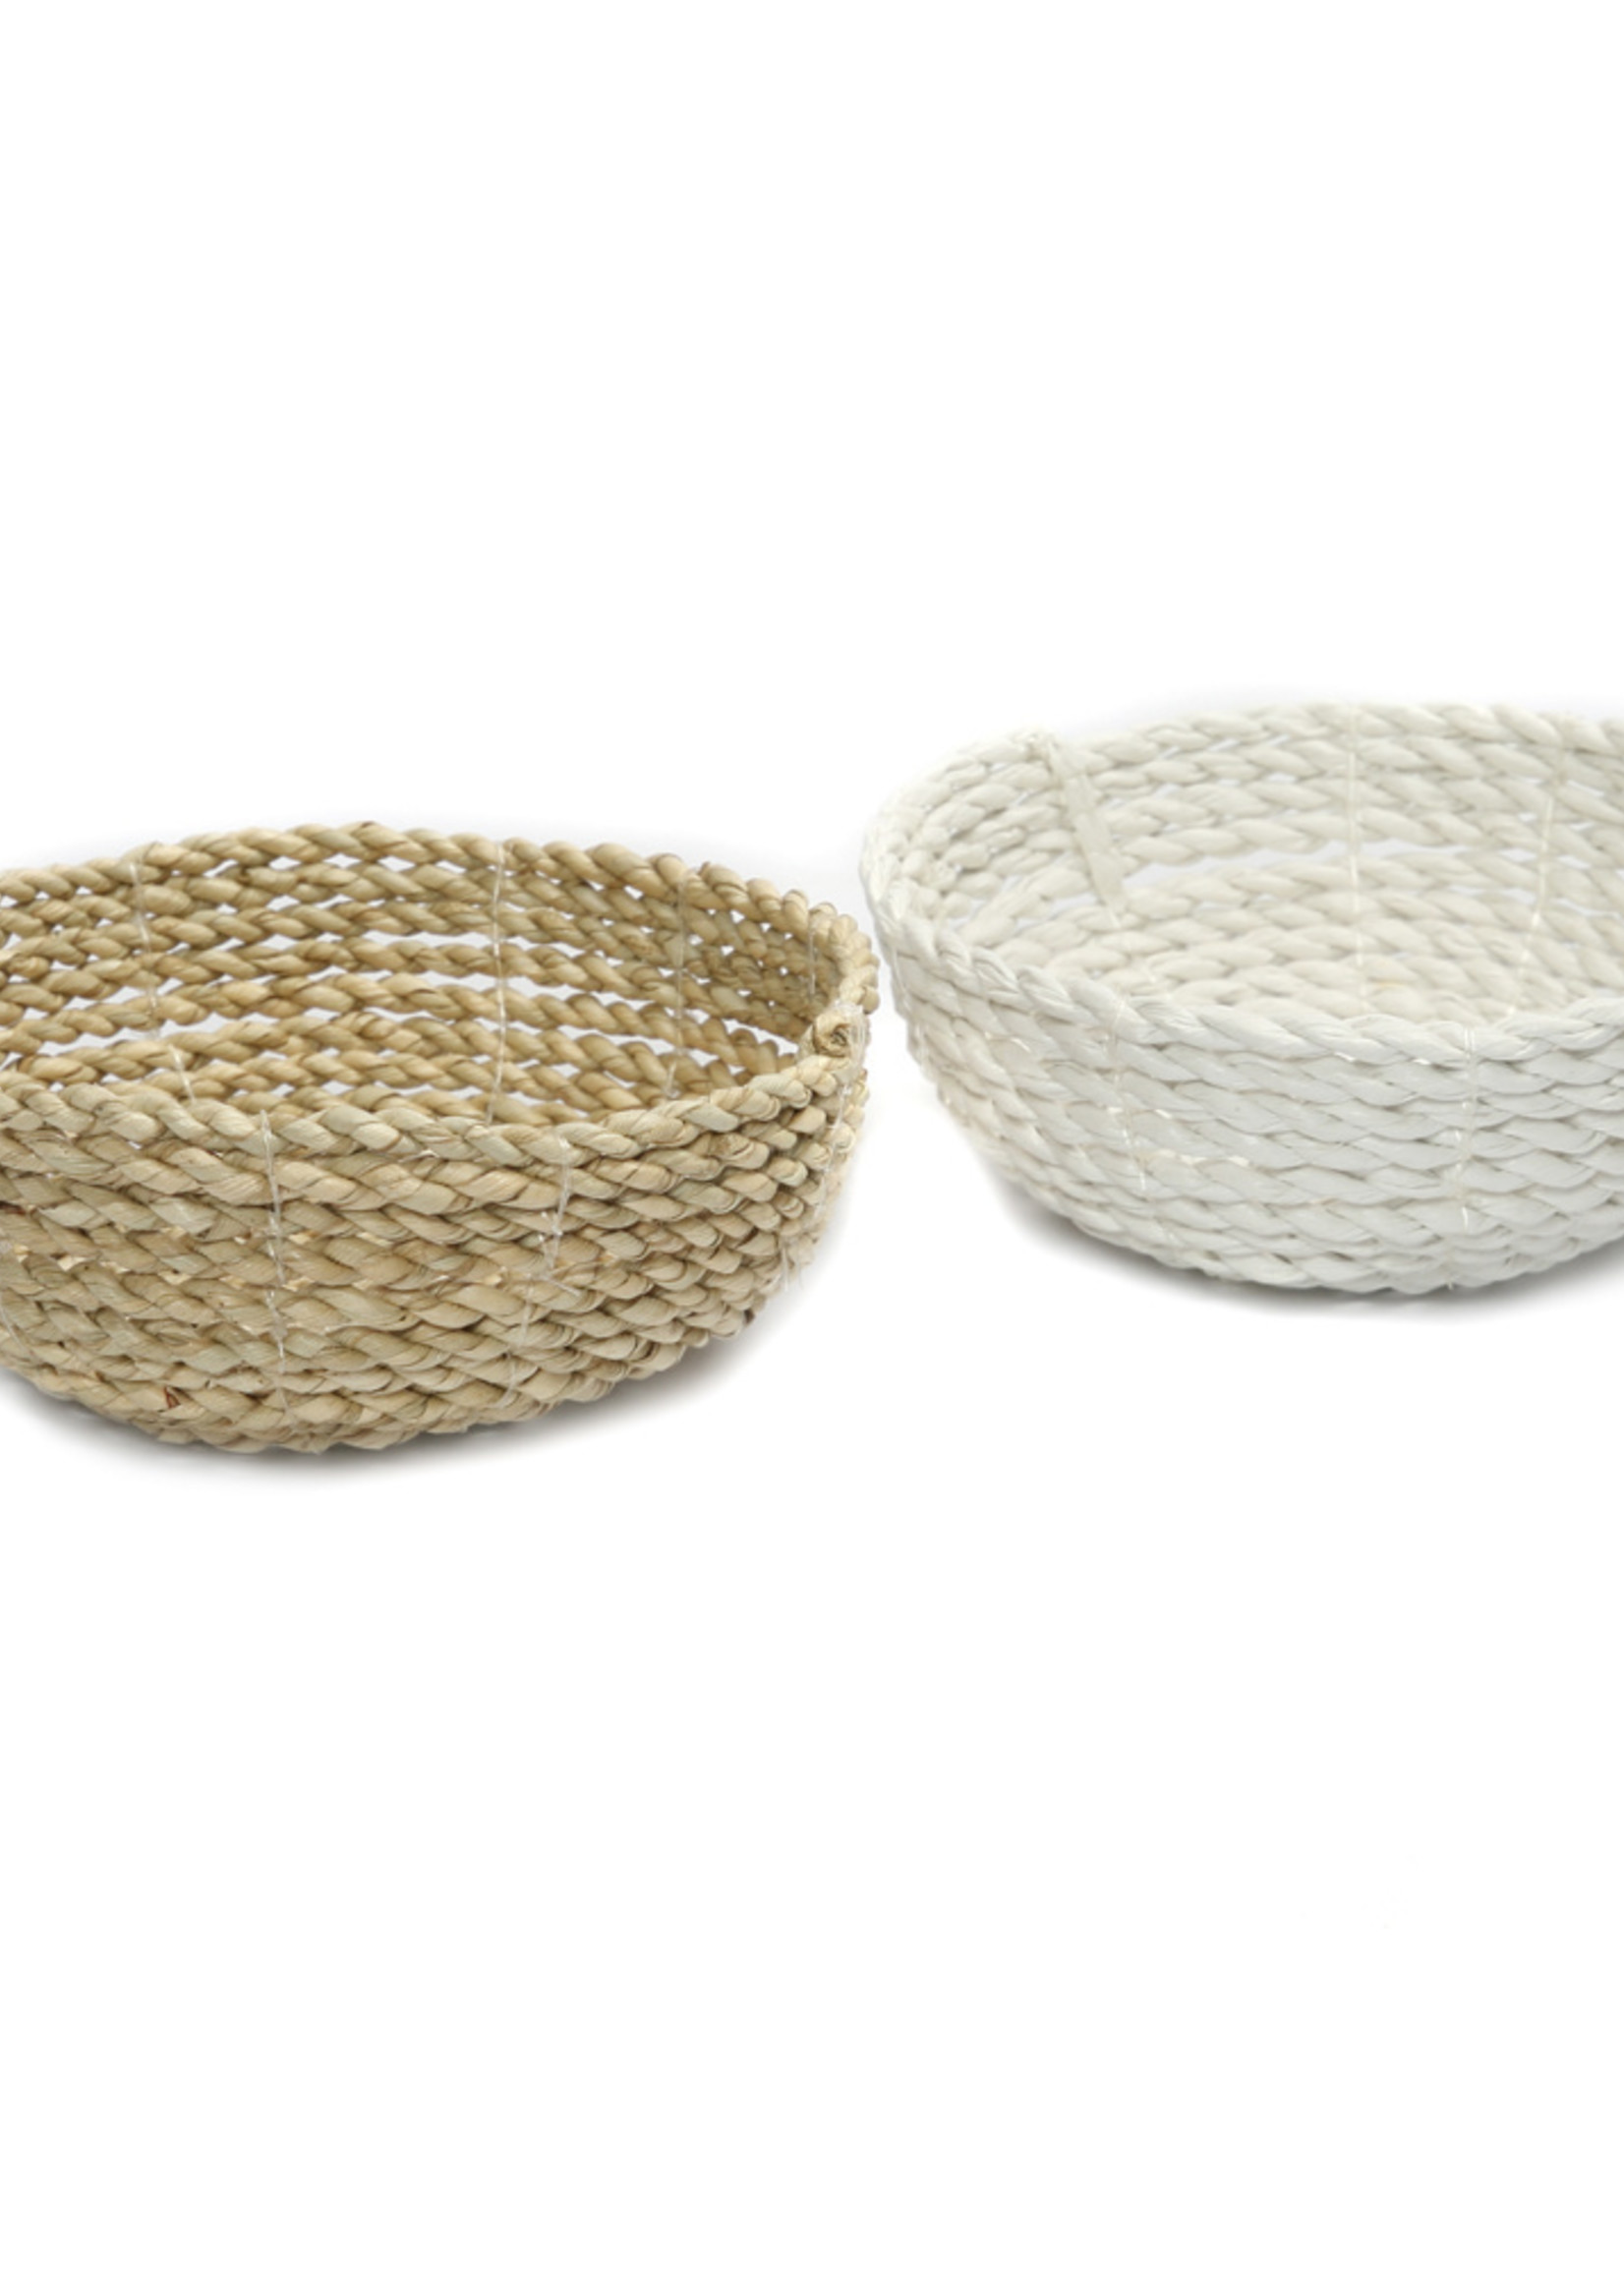 The Seagrass Bowl - Natural - S